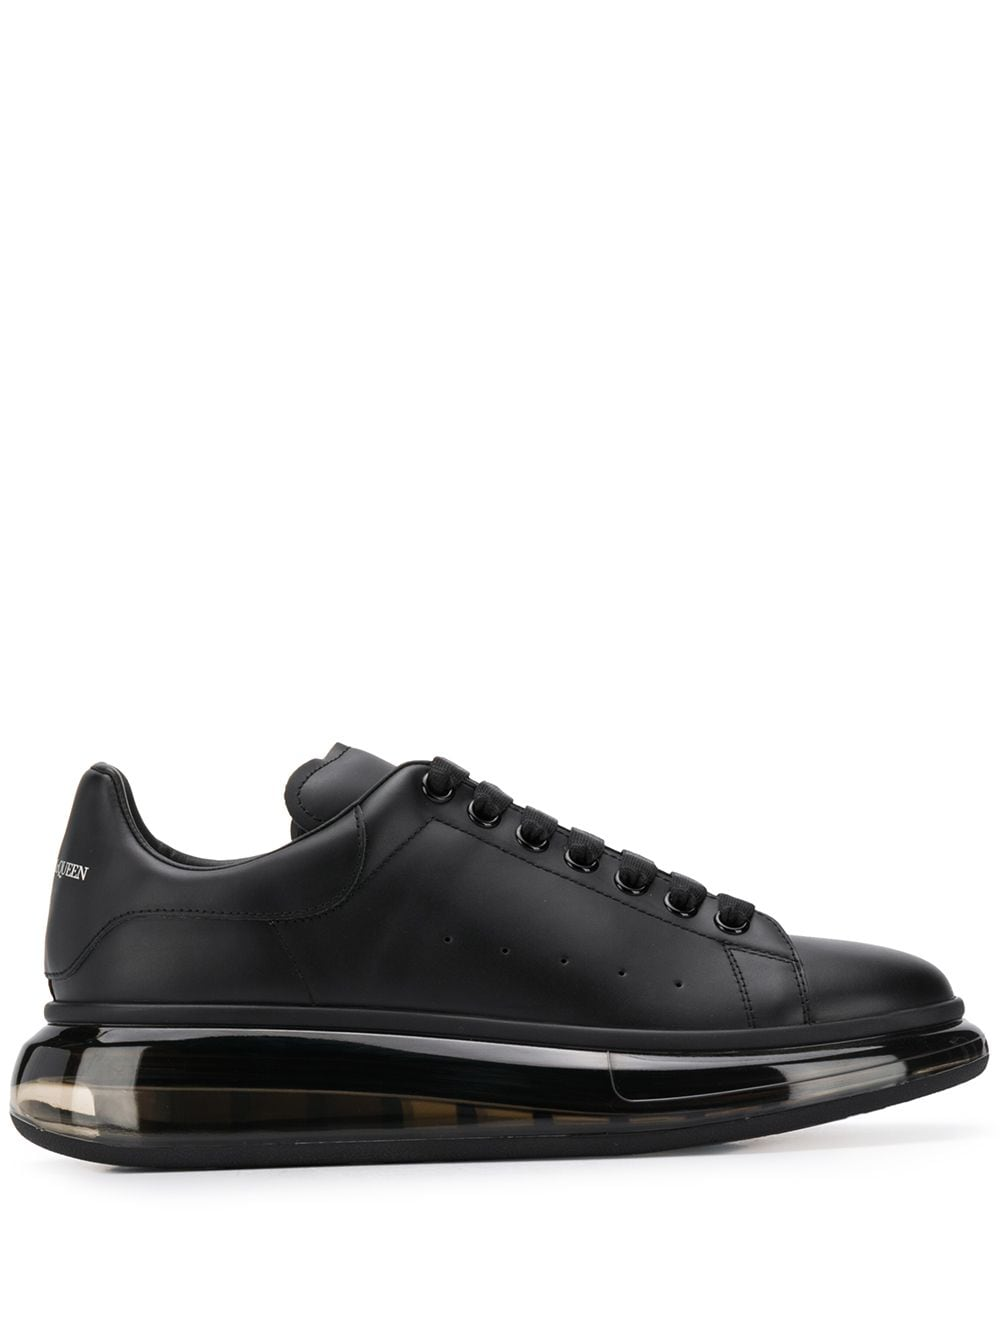 Alexander McQueen Oversized Clear Sole leather sneakers black - Maison De Fashion